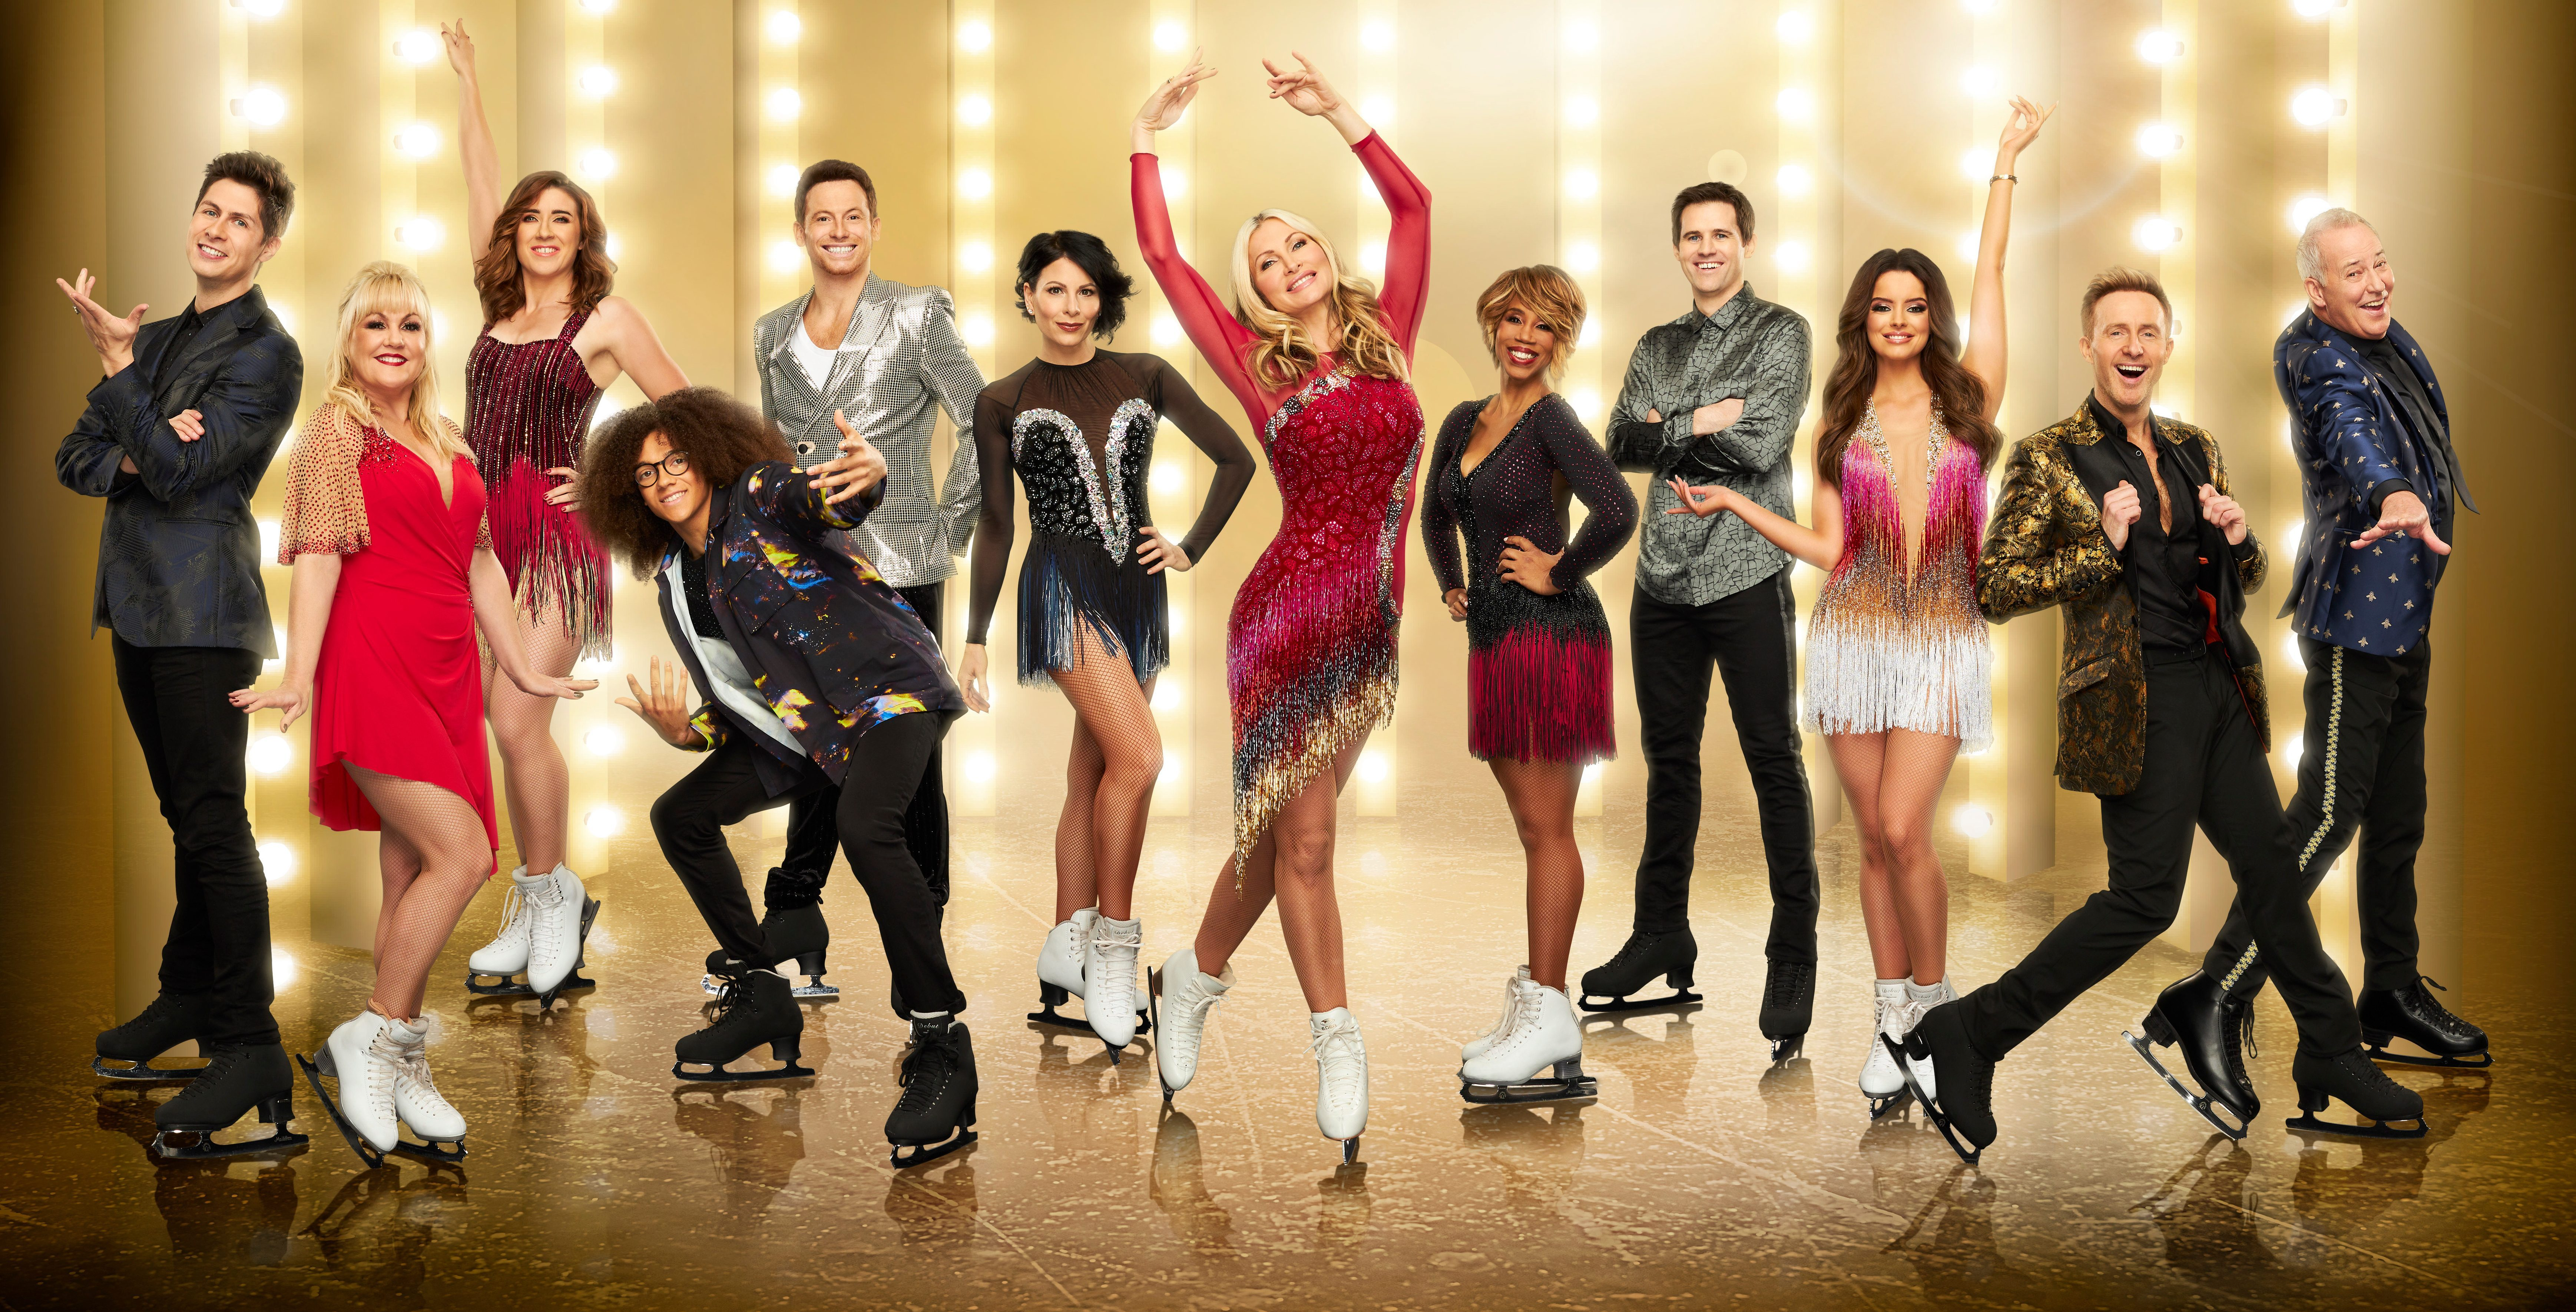 Dancing On Ice 2020 begins on Sunday January 5 at 6pm